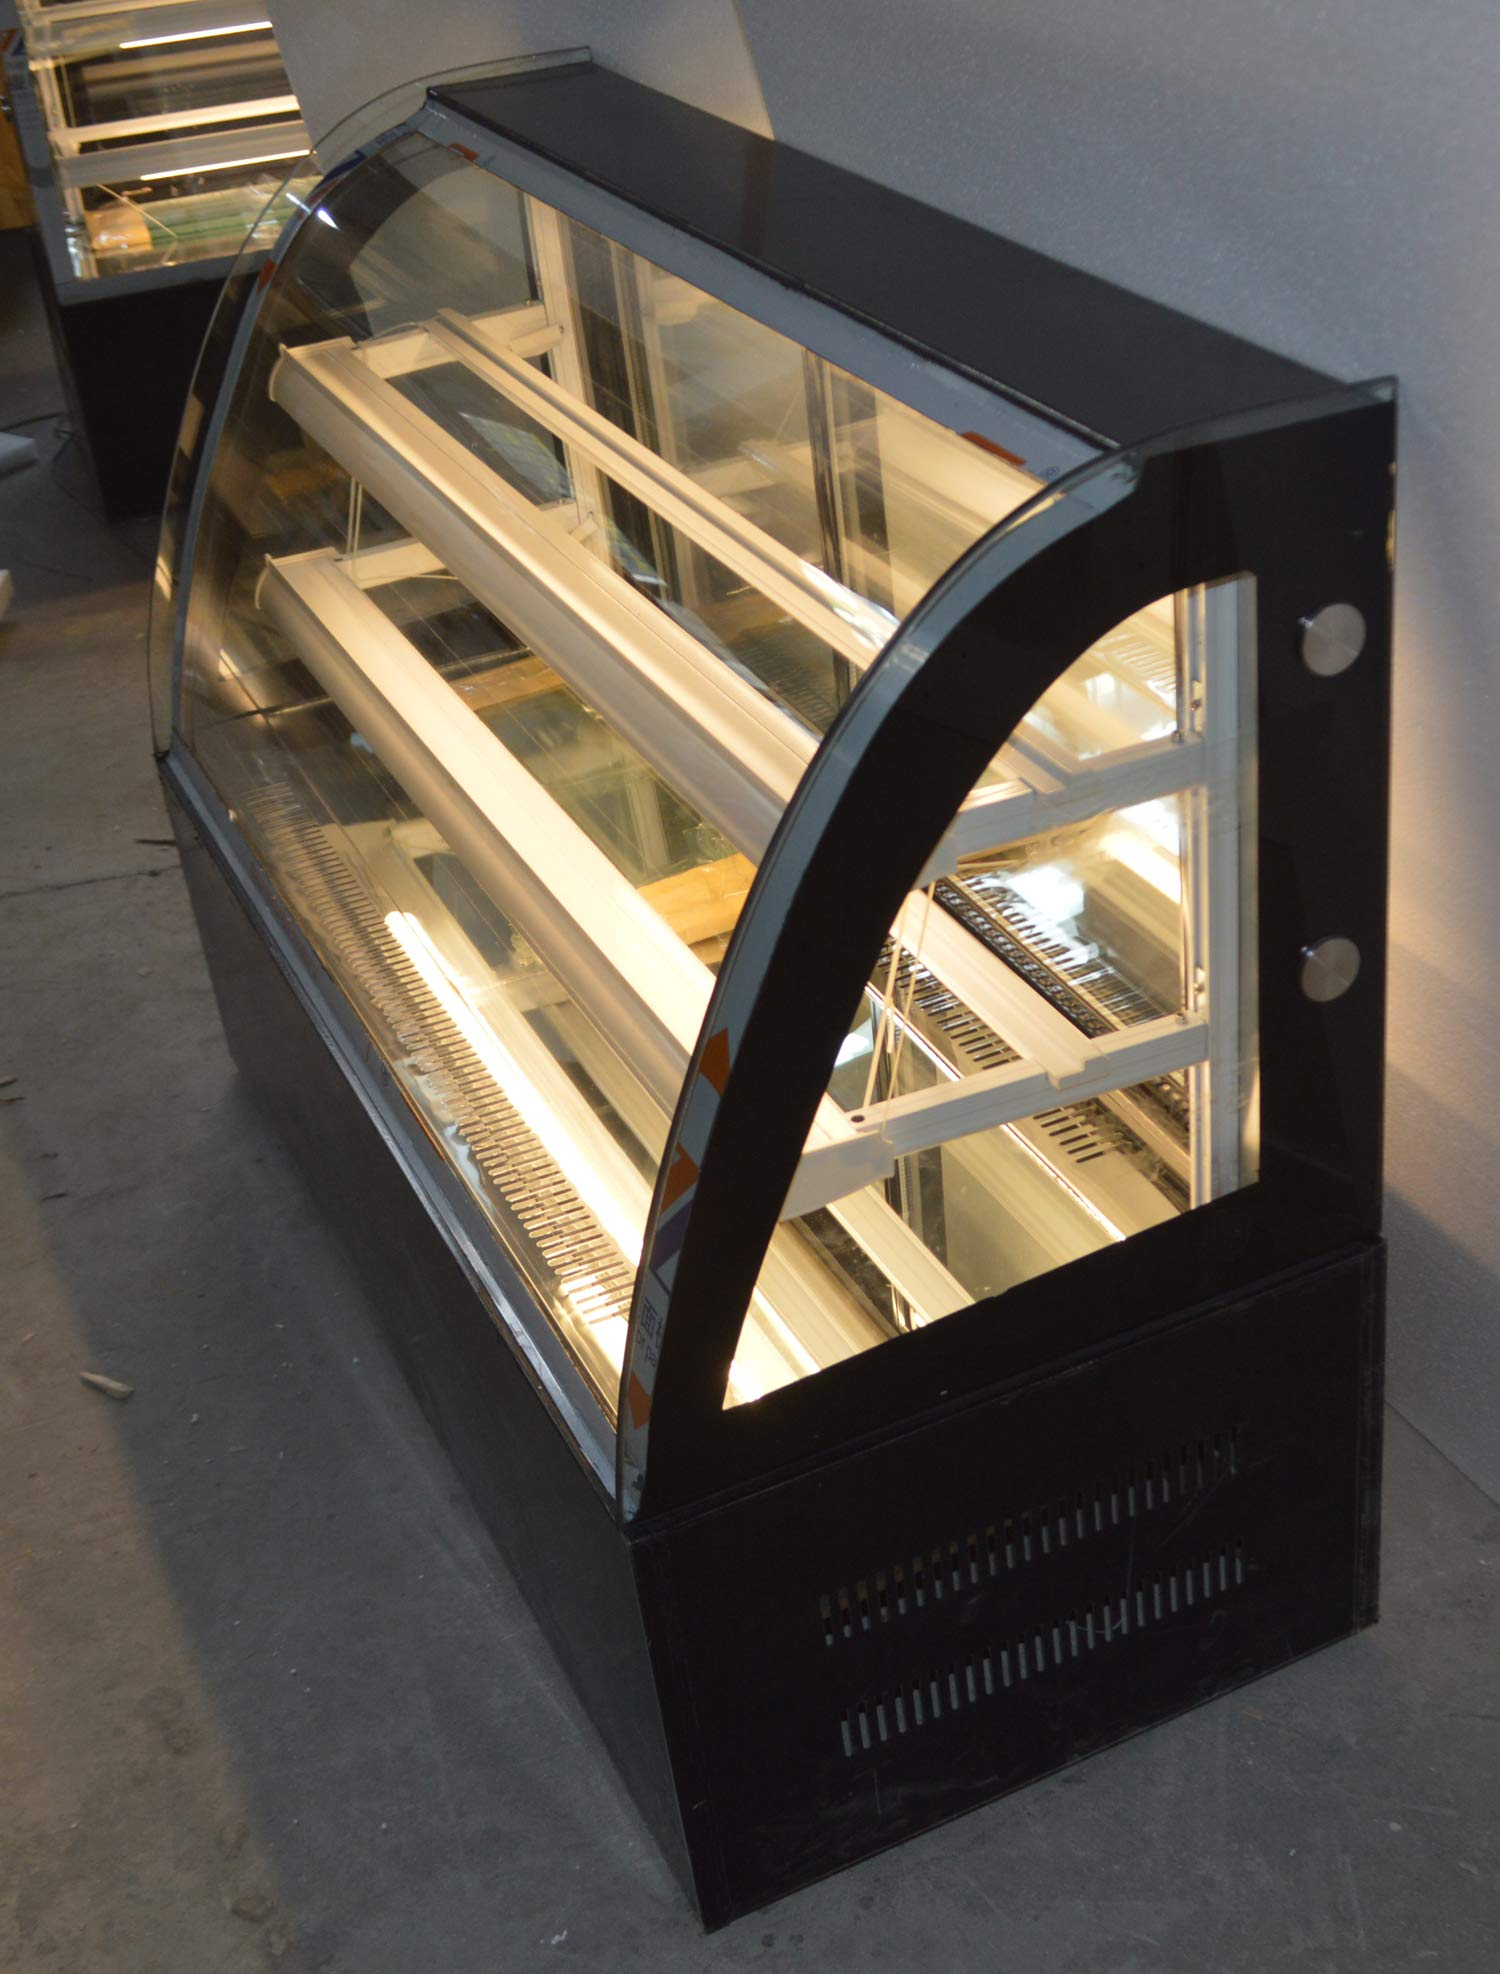 INTBUYING 47'' Countertop Bekery Cabinet Display Case Glass Refrigerated Cake Showcase 220V 315W 36-46F by INTBUYING (Image #4)